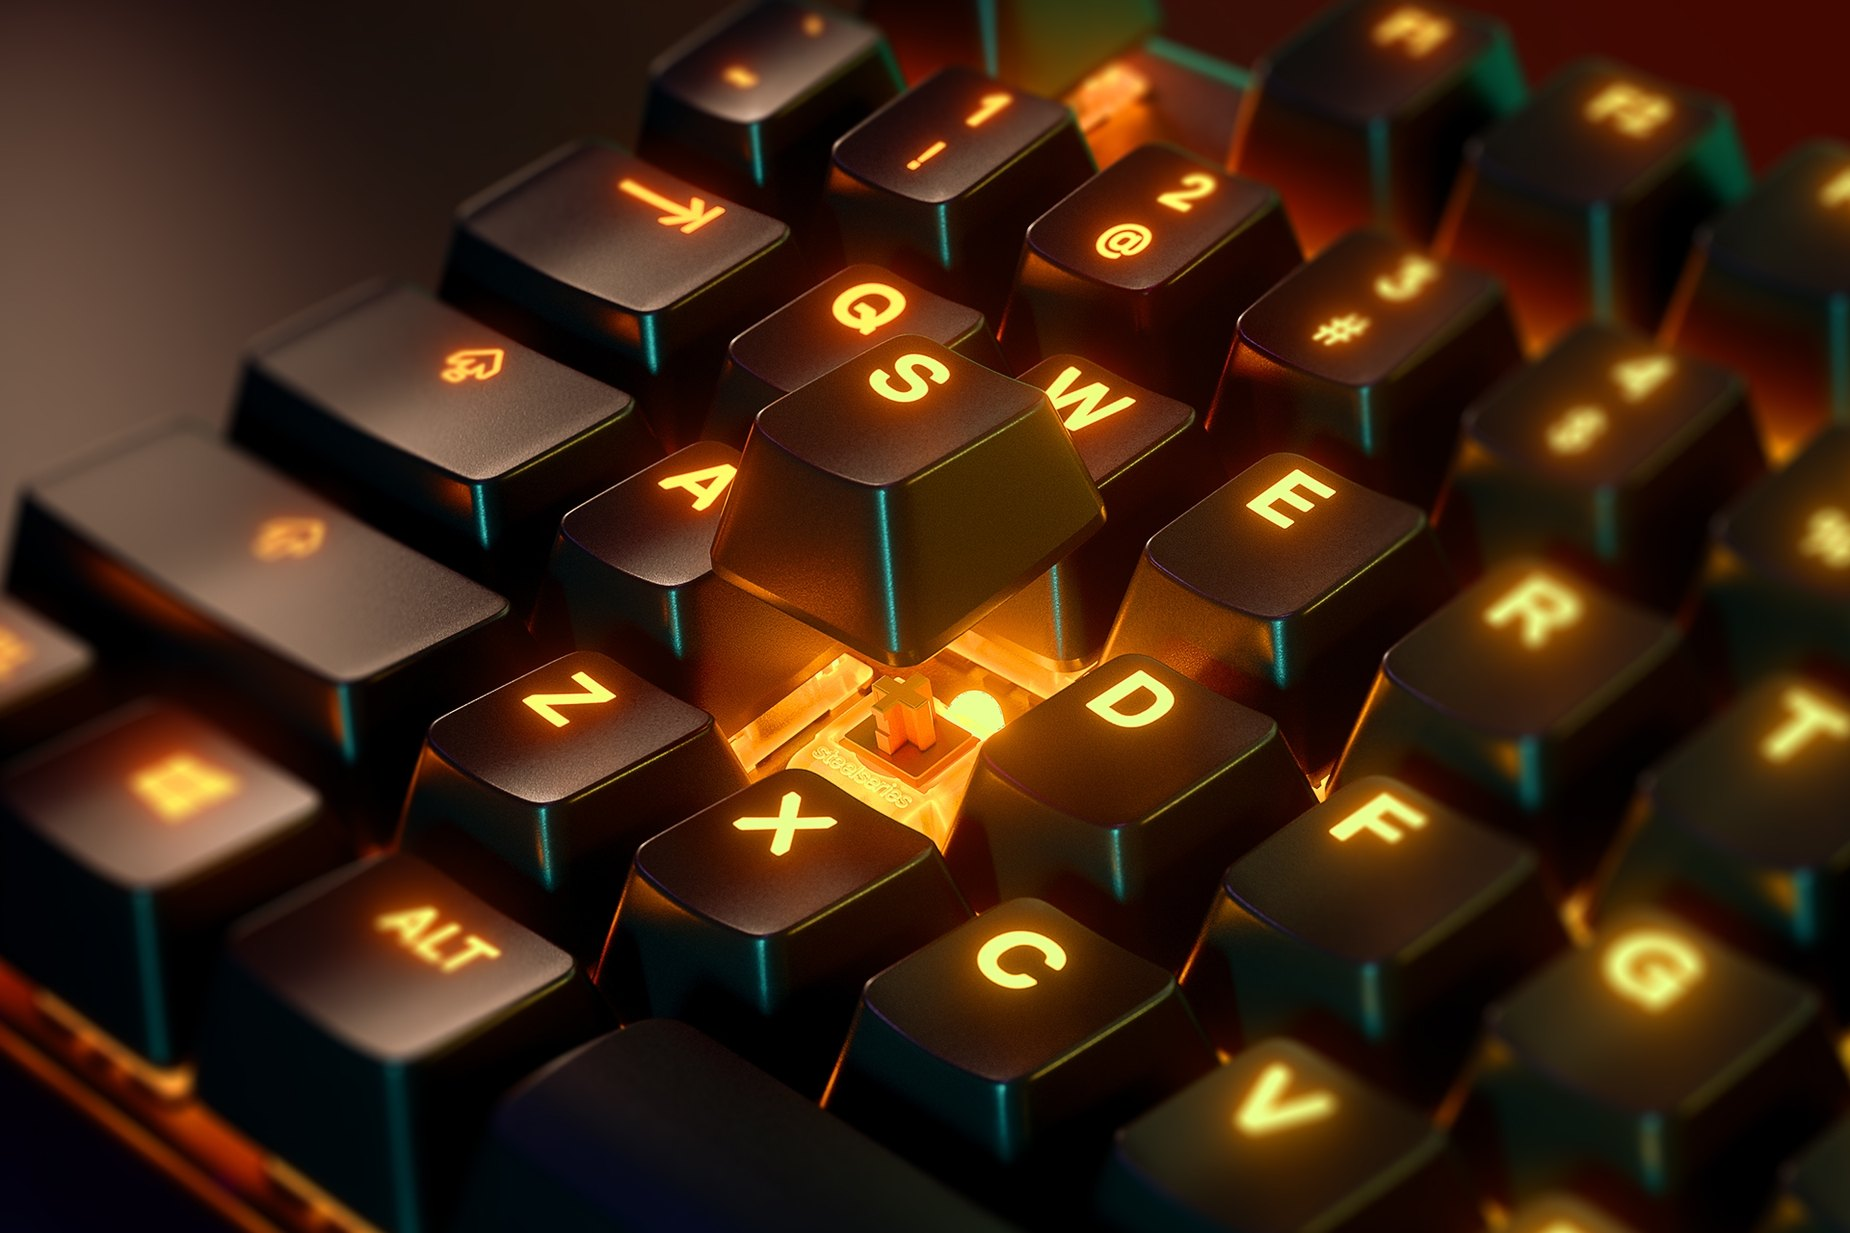 Zoomed in view of a single key on the French - Apex 7 TKL (Brown Switch) gaming keyboard, the key is raised up to show the SteelSeries QX2 Mechanical RGB Switch underneath